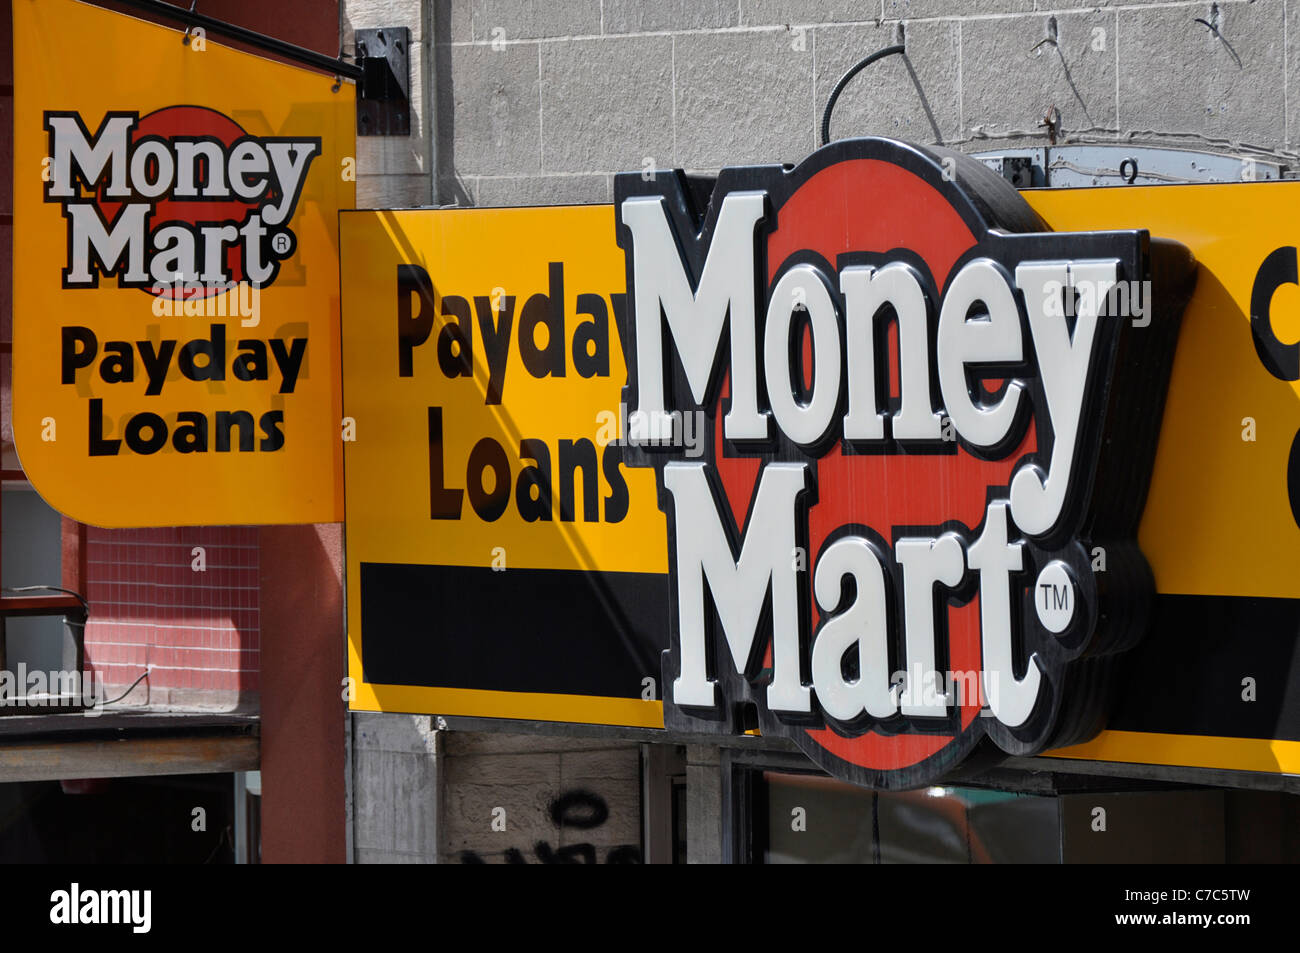 Payday Loans Sign On Store Front, Money Mart Stock Photo. Commercial Deep Fryer For Rent. Cooley Volkswagen Mazda Standard Pallet Truck. Hardness Scale For Metals Online Text Service. Education Requirements For A Physical Therapist. Sears Holding Corporation Human Resources. Salary Physical Therapist Free Website Bilder. Ann Arbor Advertising Agencies. Chemical Waste Treatment Donor Embryo Program